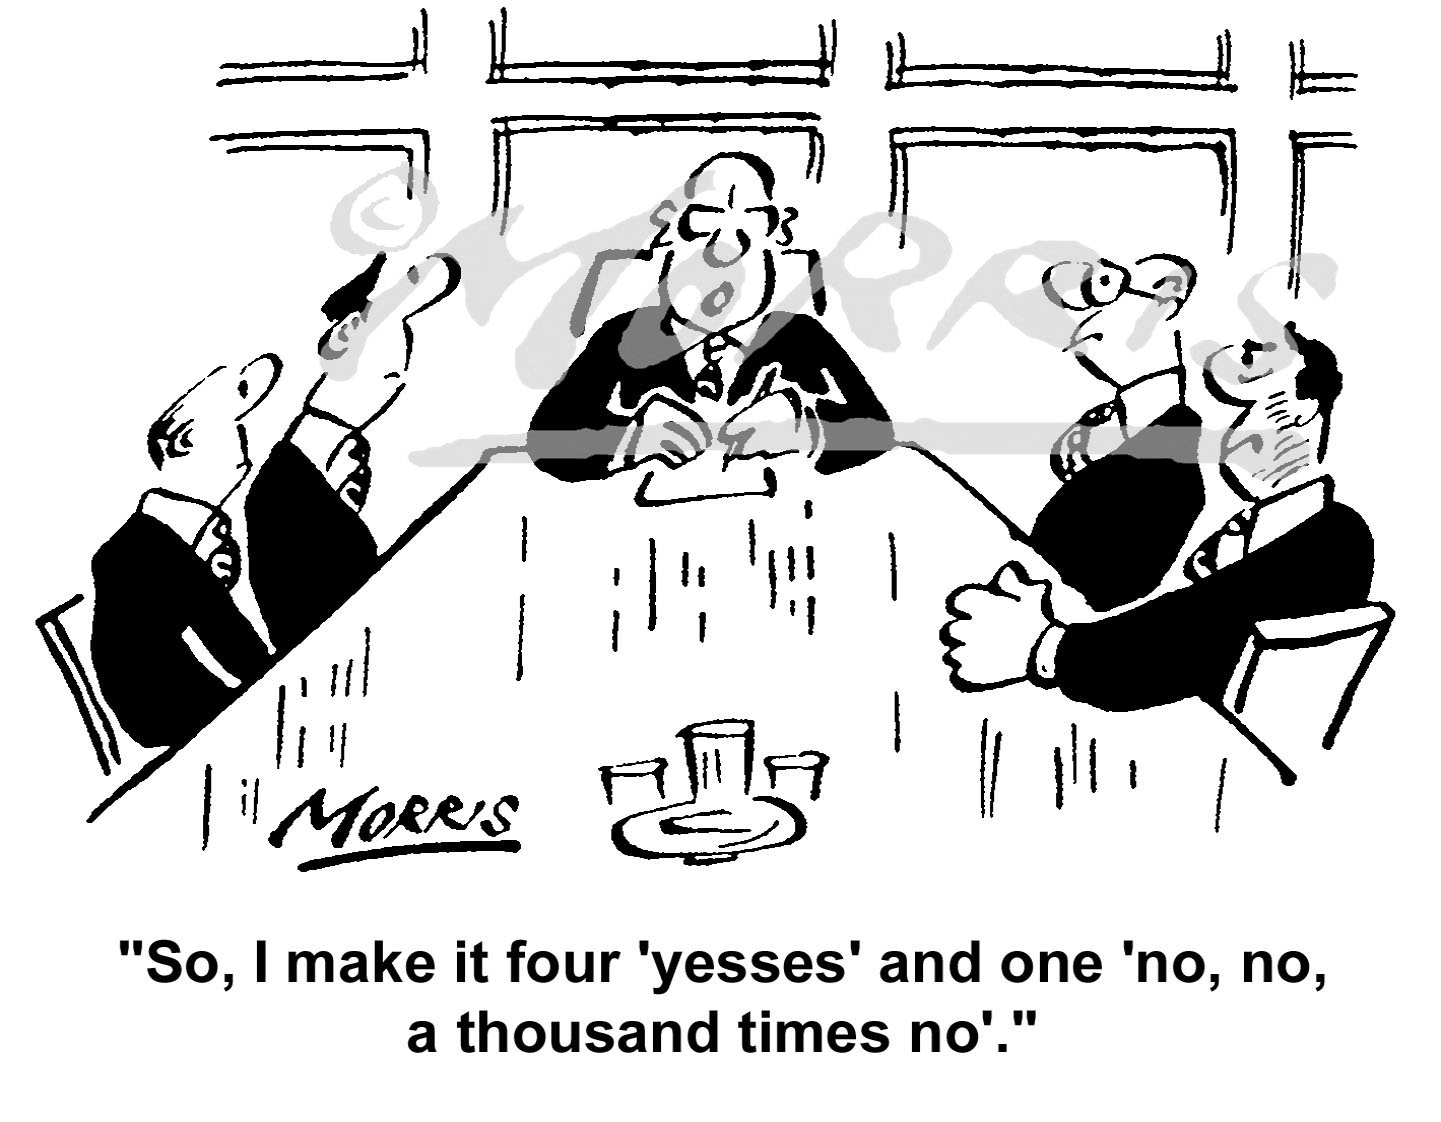 Boardroom meeting cartoon – Ref: 5069bw